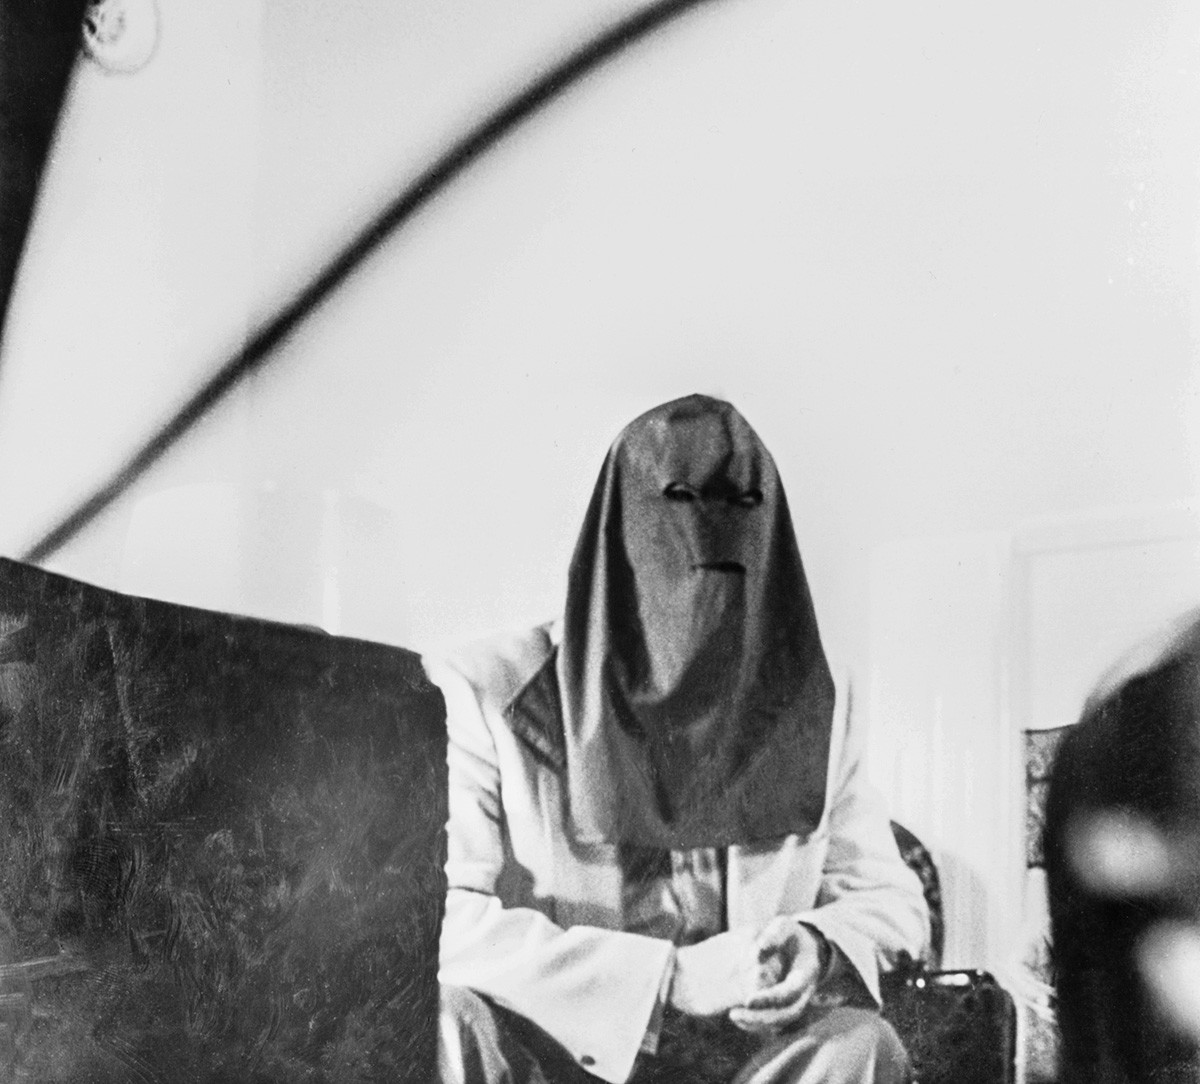 Igor Gouzenko, former decoding clerk in the Russian Embassy in Toronto who exposed a Red spy ring operation in Canada, is shown in the first photo ever permitted of him since he became a marked man...He is wearing a specifically designed hood to foil future identification.